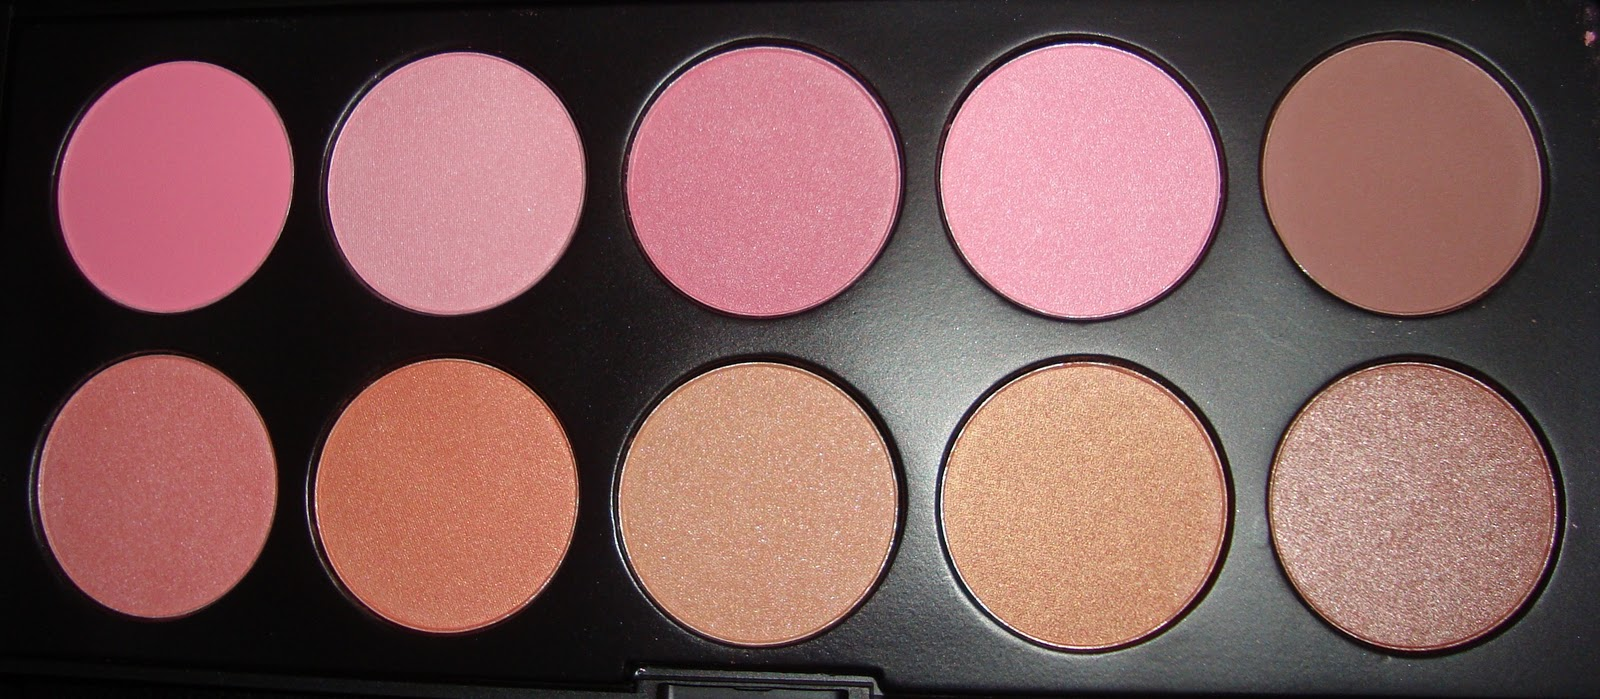 crown brush palette. crown brushes blush palette brush